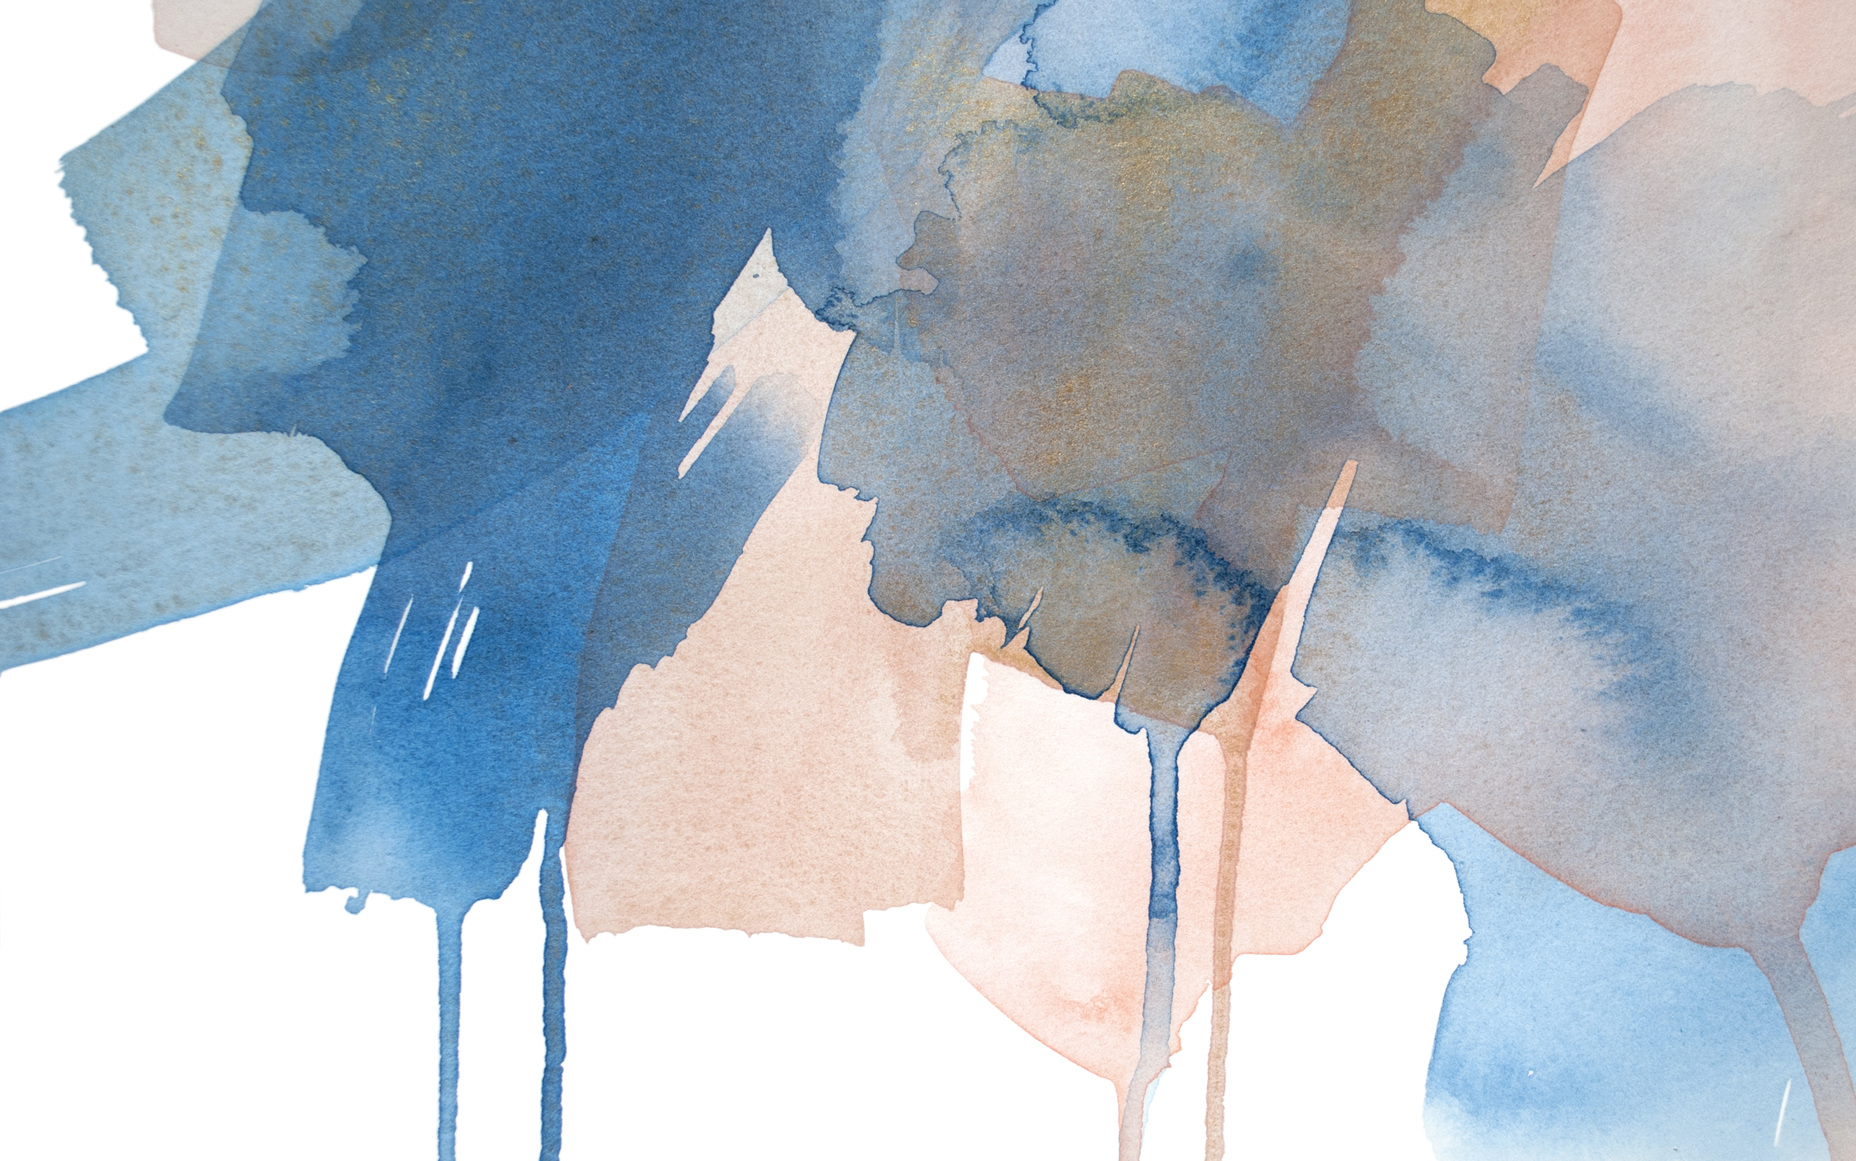 1000+ images about Watercolour on Pinterest Watercolor print, Summer wallpaper and Watercolor ...